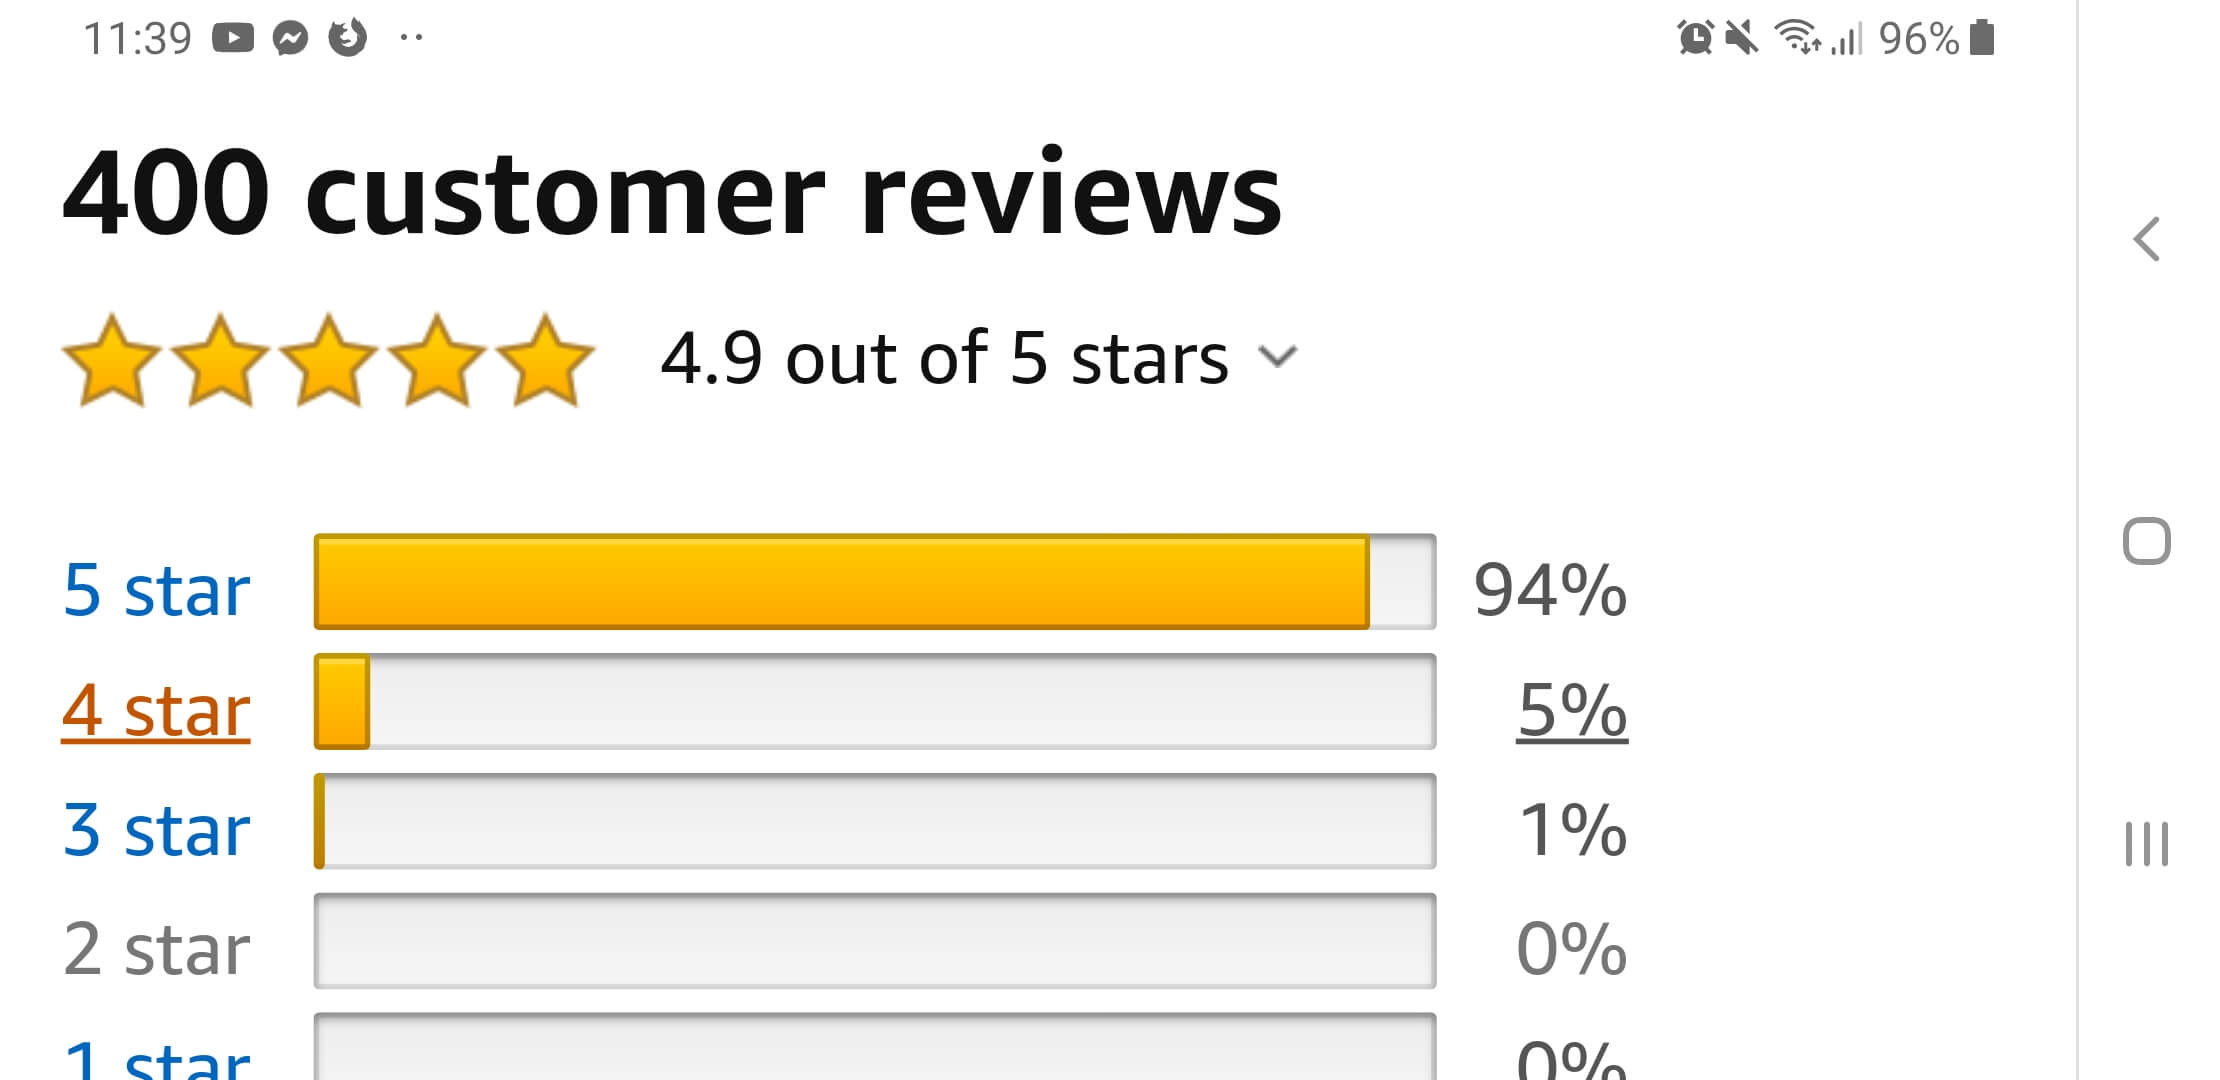 Jackson - 400 organic reviews on one product